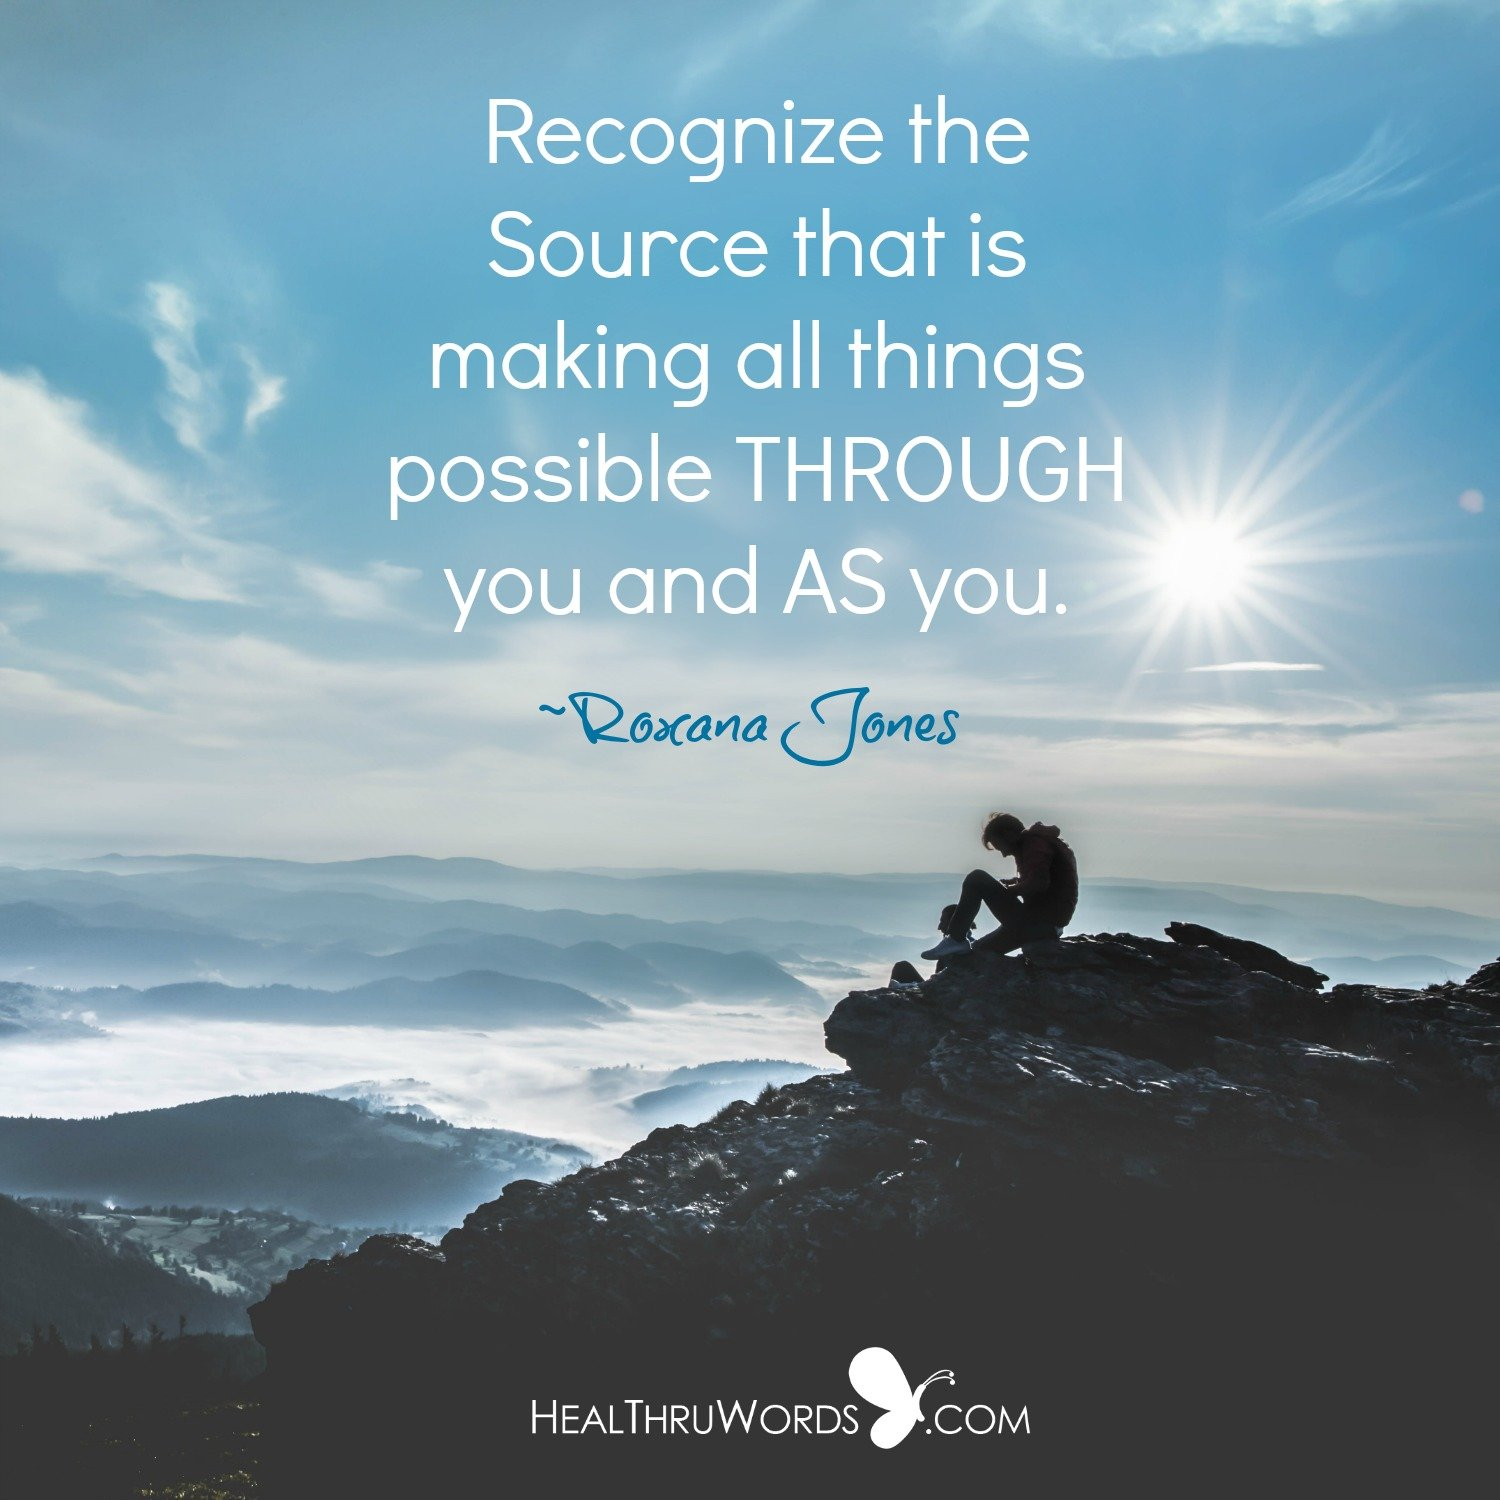 Inspirational Image: The Source of You